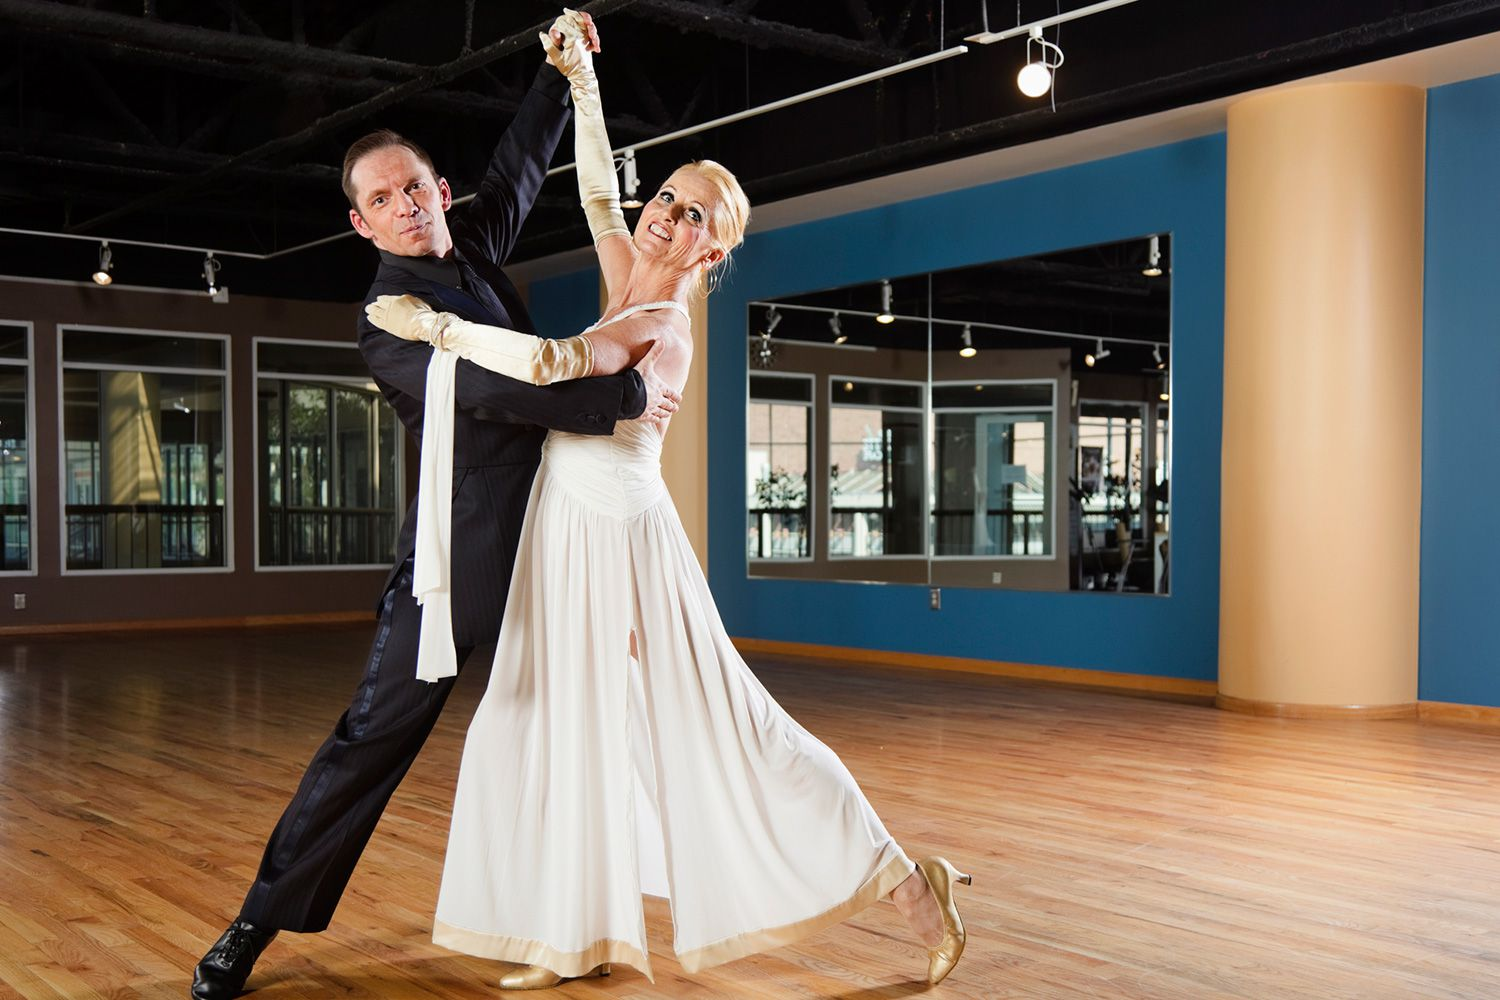 12 Types Of Ballroom Dances Foxtrot Steps Diagram Waltz Dance